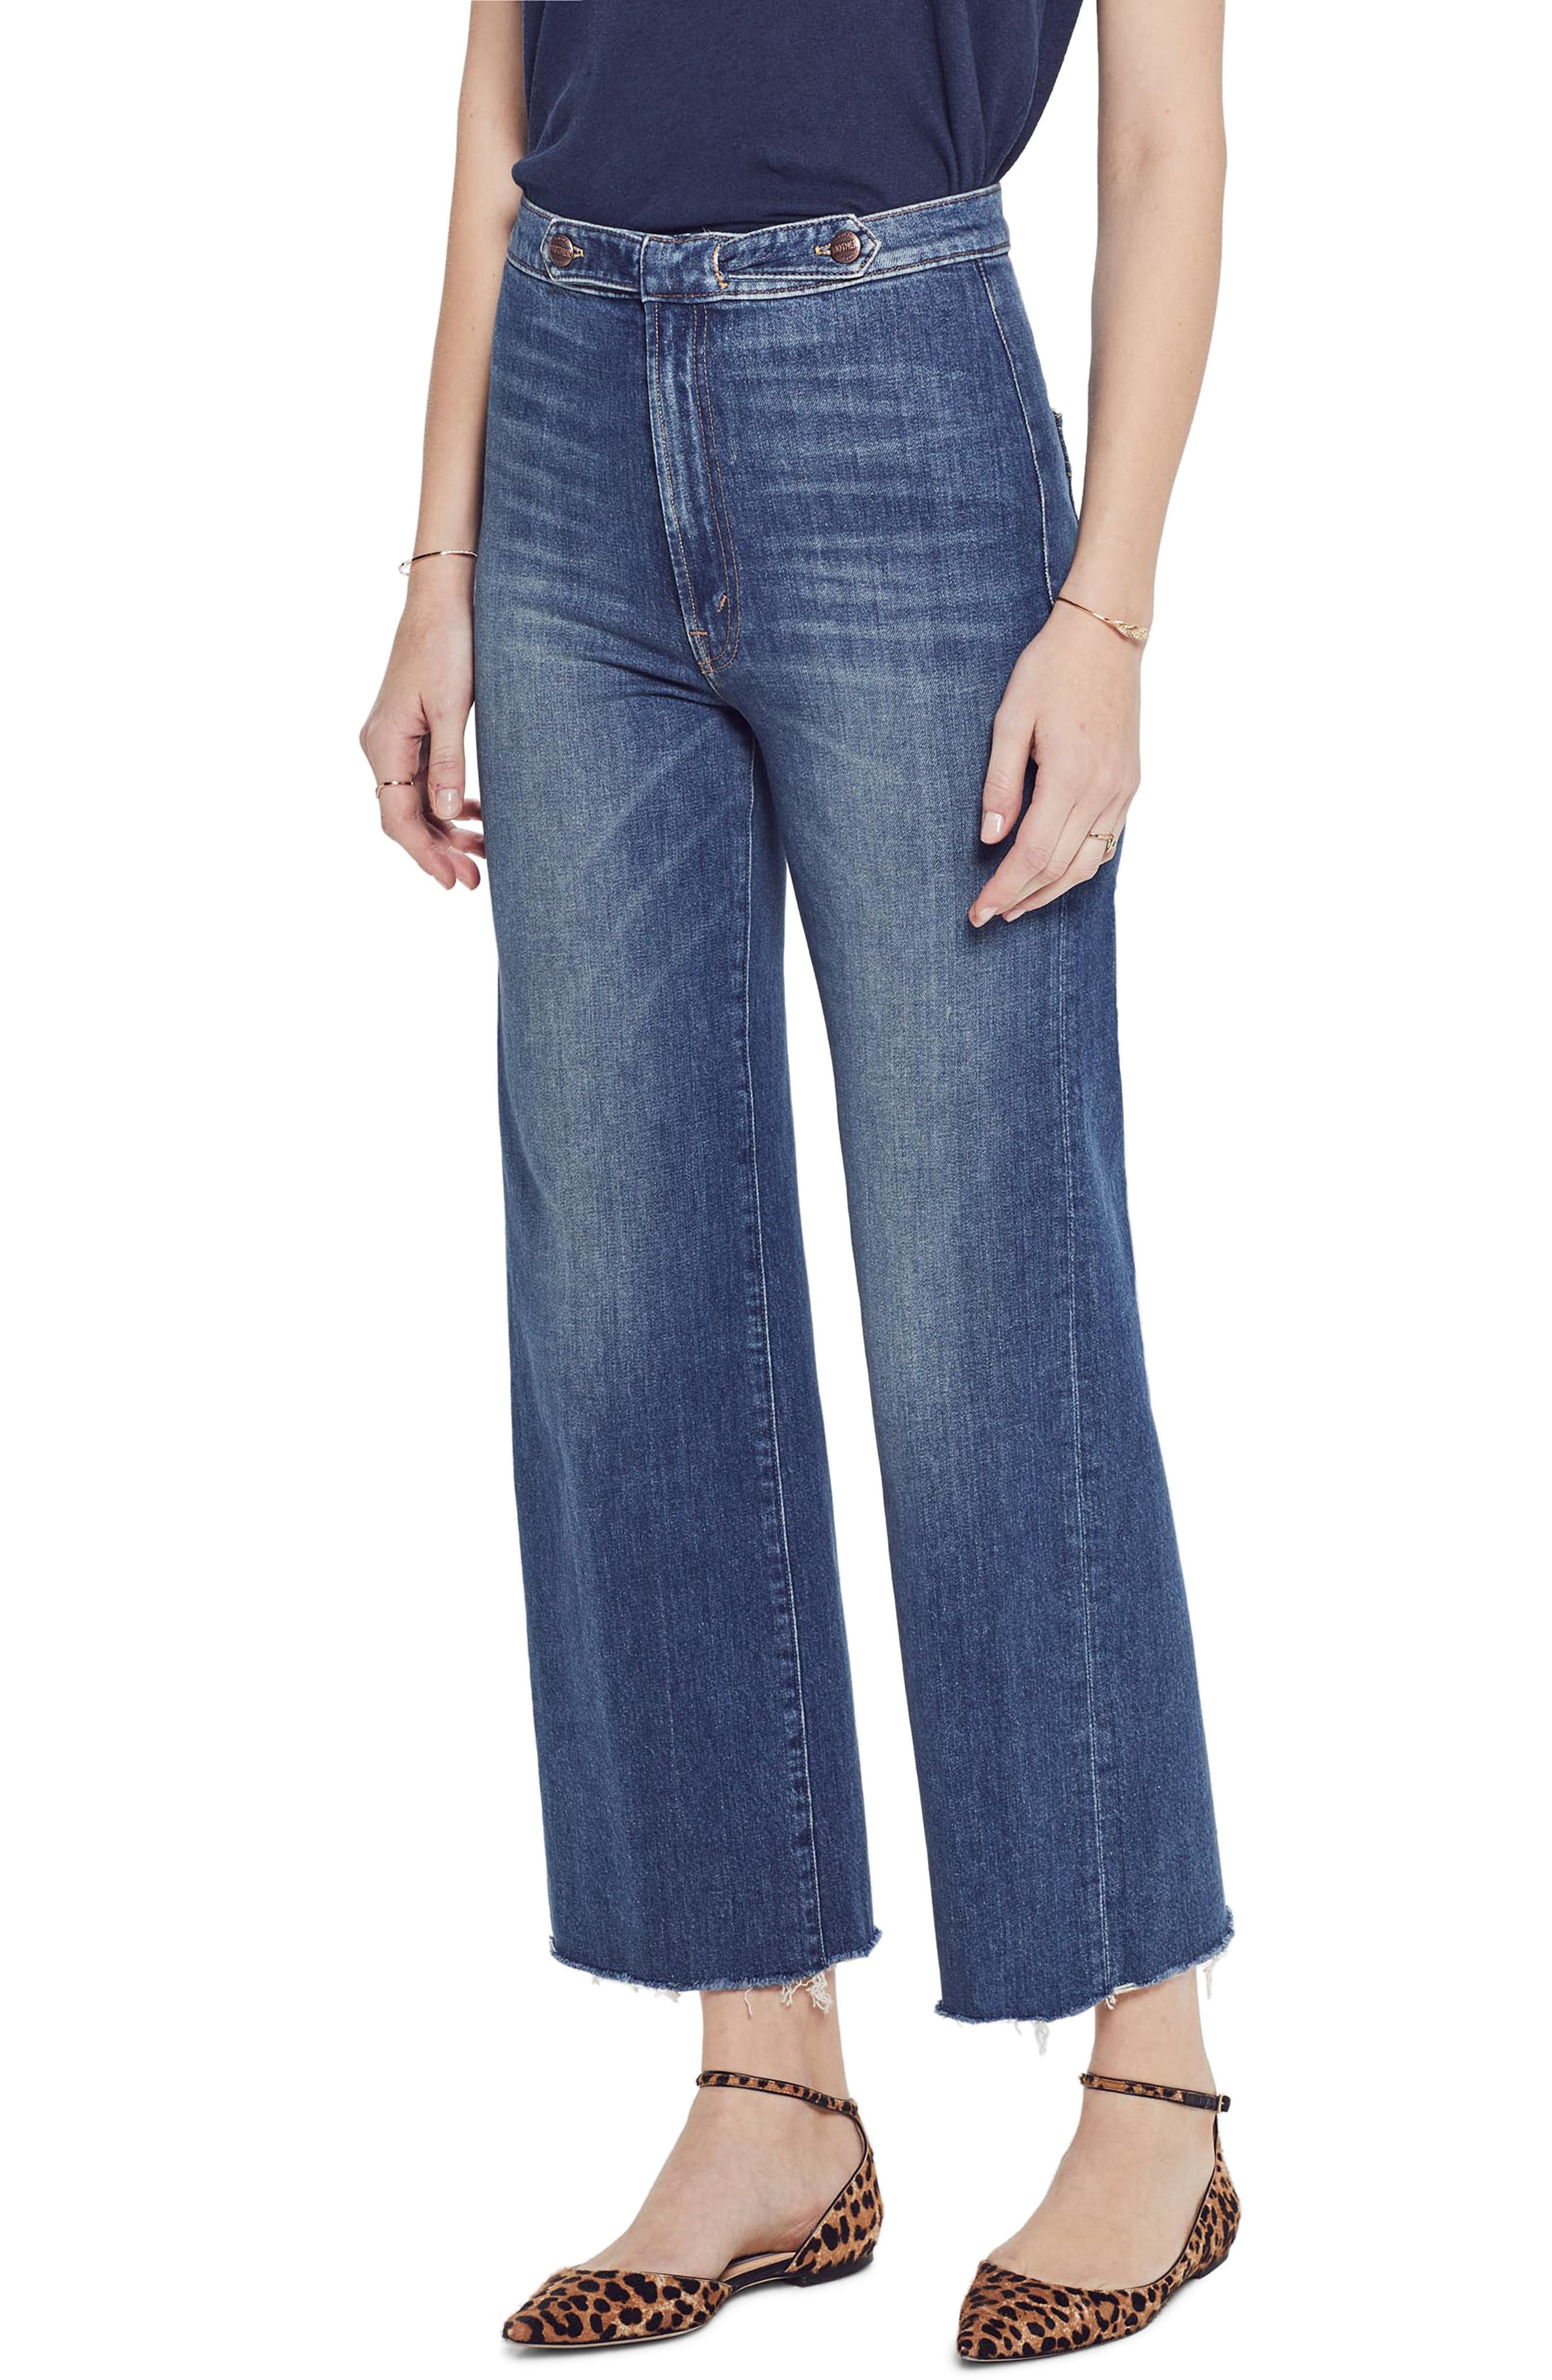 MOTHER, The Loop De Loop Frayed Wide Leg Jeans, Main thumbnail 1, color, JUST ONE SIP